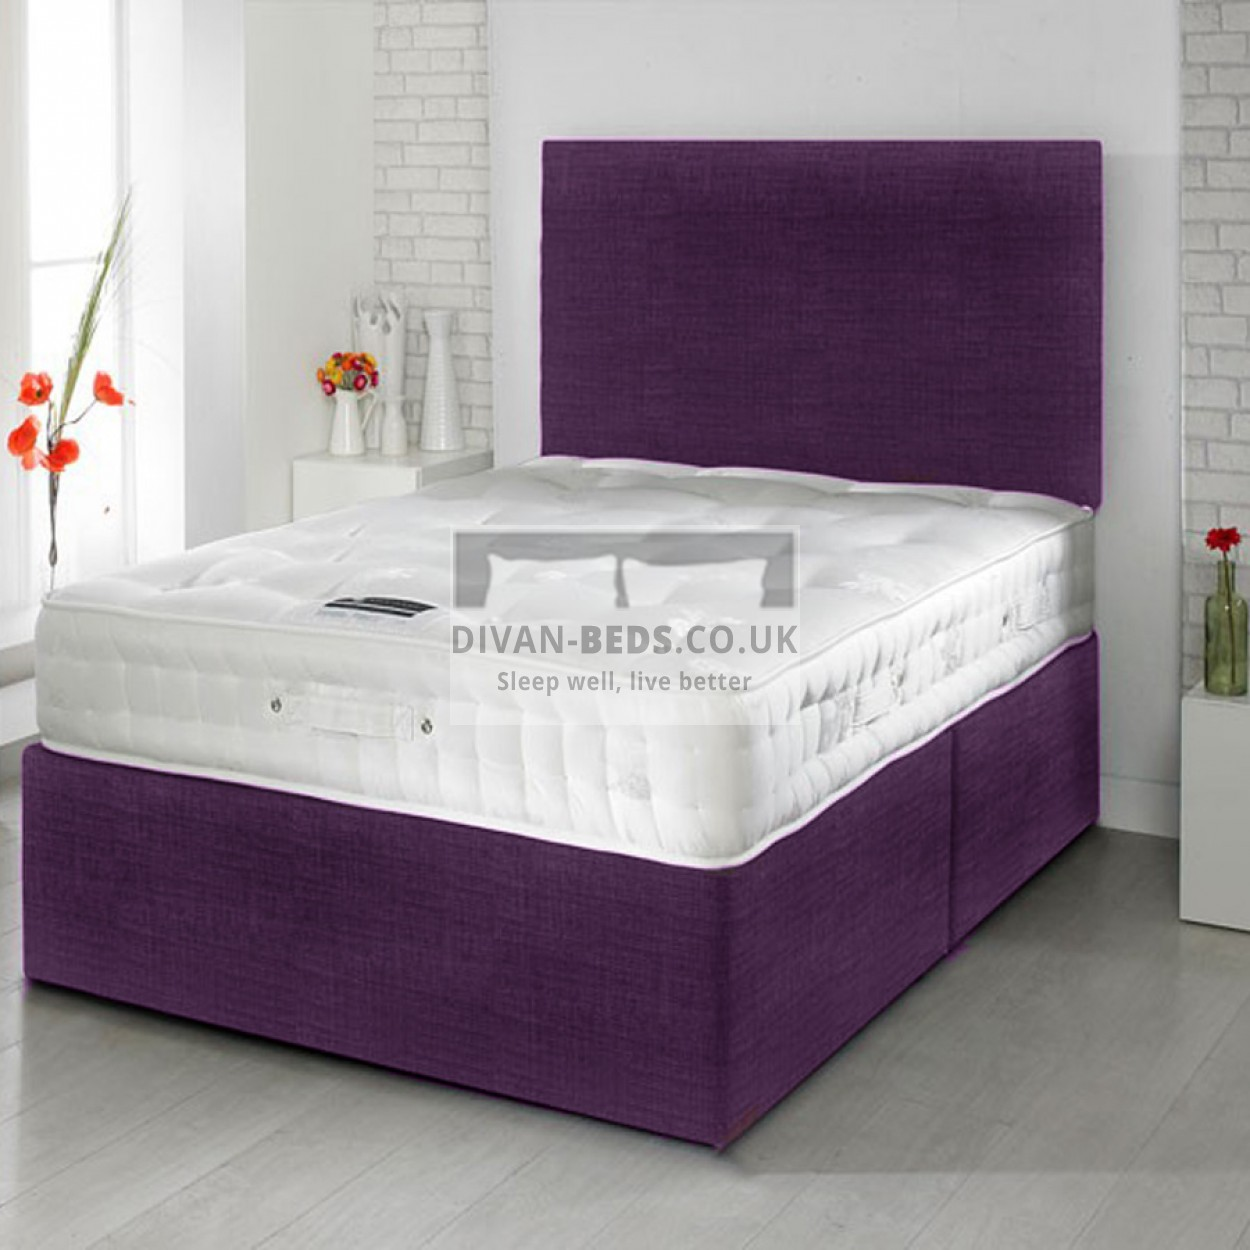 Robin Divan Bed With Spring Memory Foam Mattress